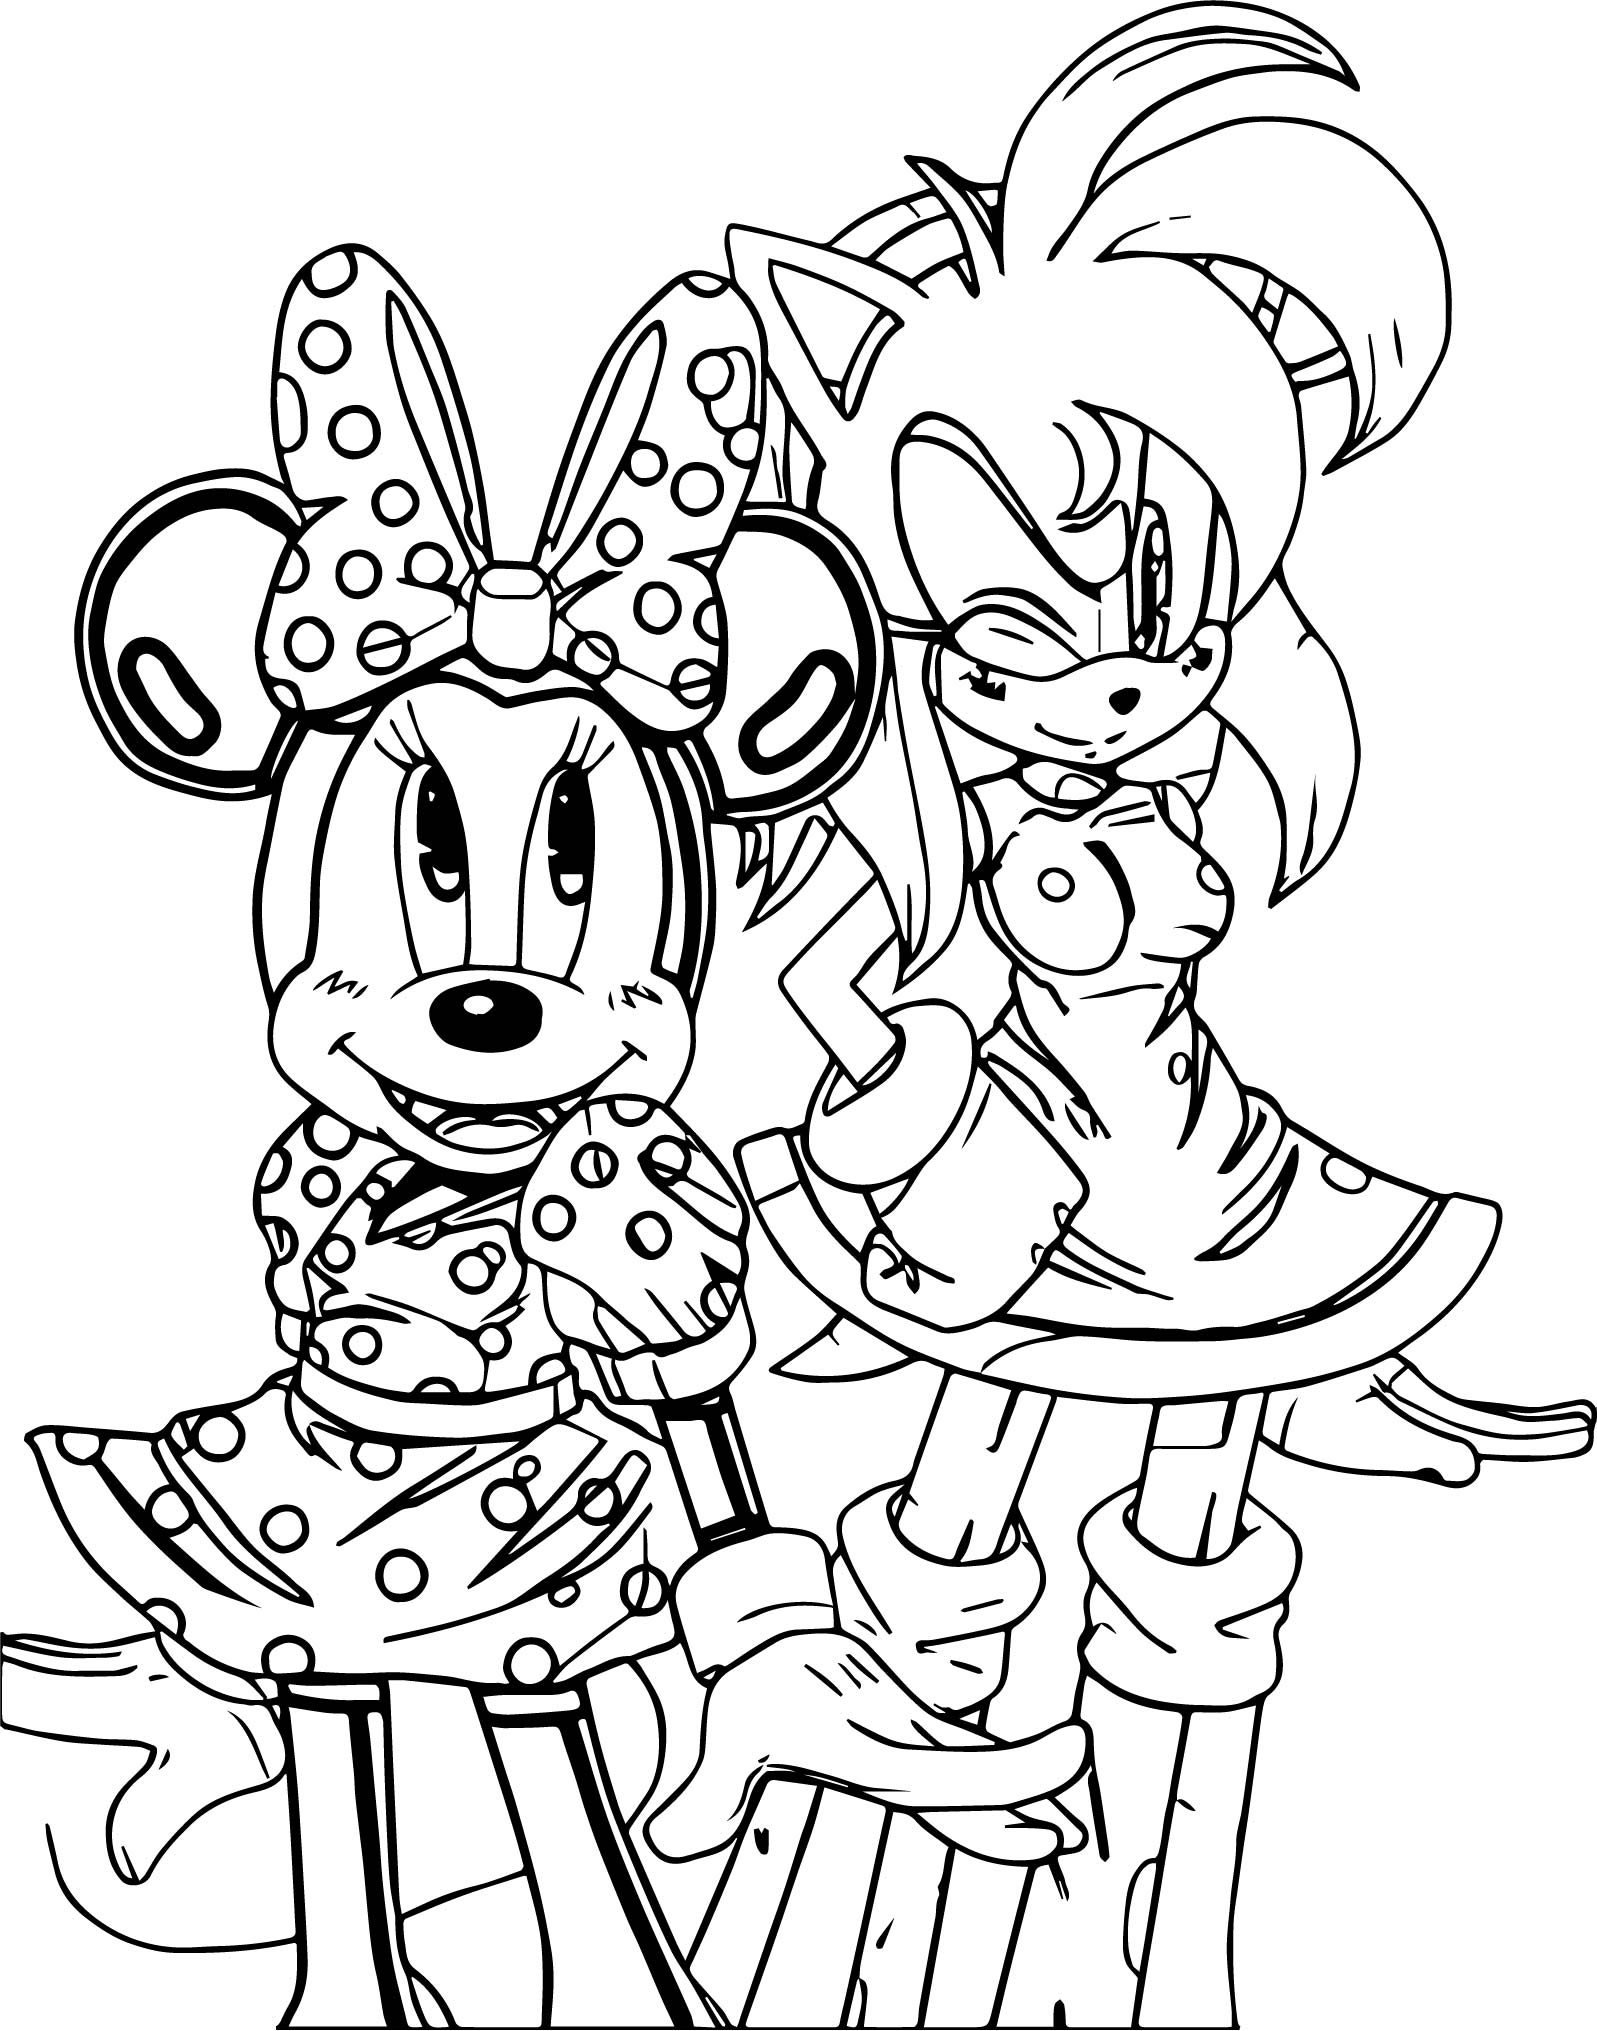 minnie mouse and amy rose coloring page wecoloringpage